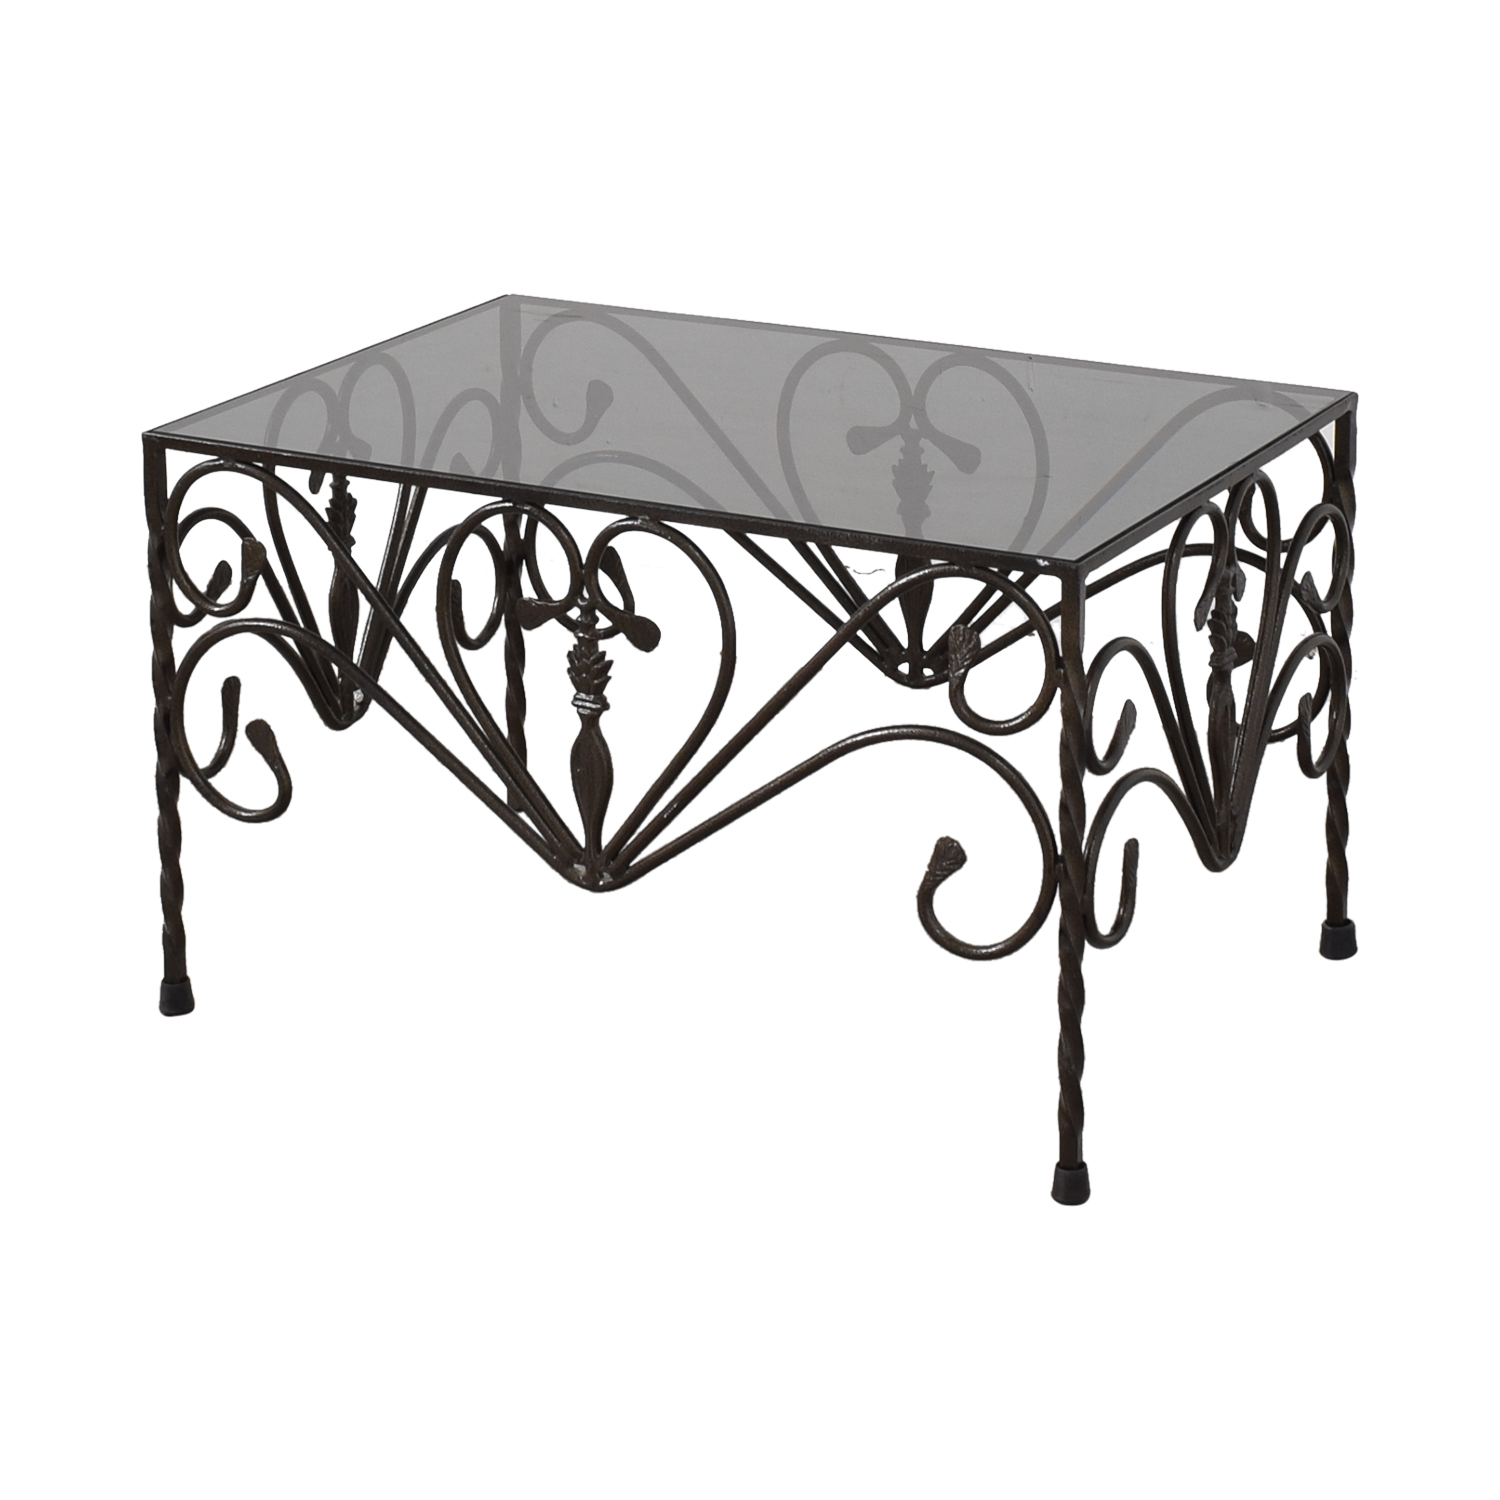 Custom Wrought Iron Table Accent Tables